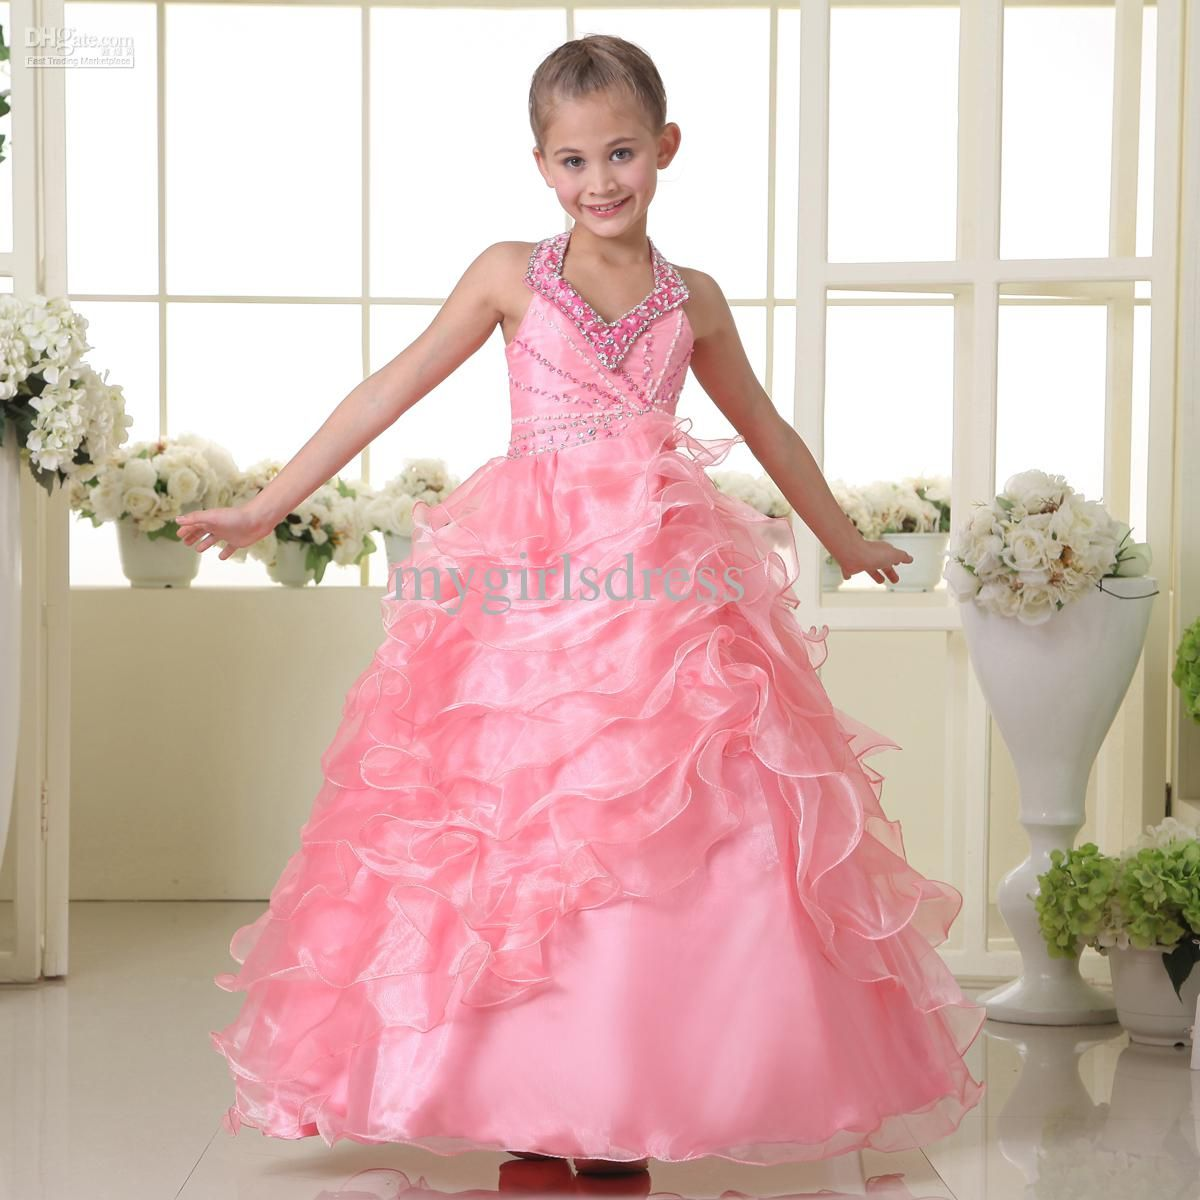 Jcpenney junior holiday dresses boutique prom dresses holiday